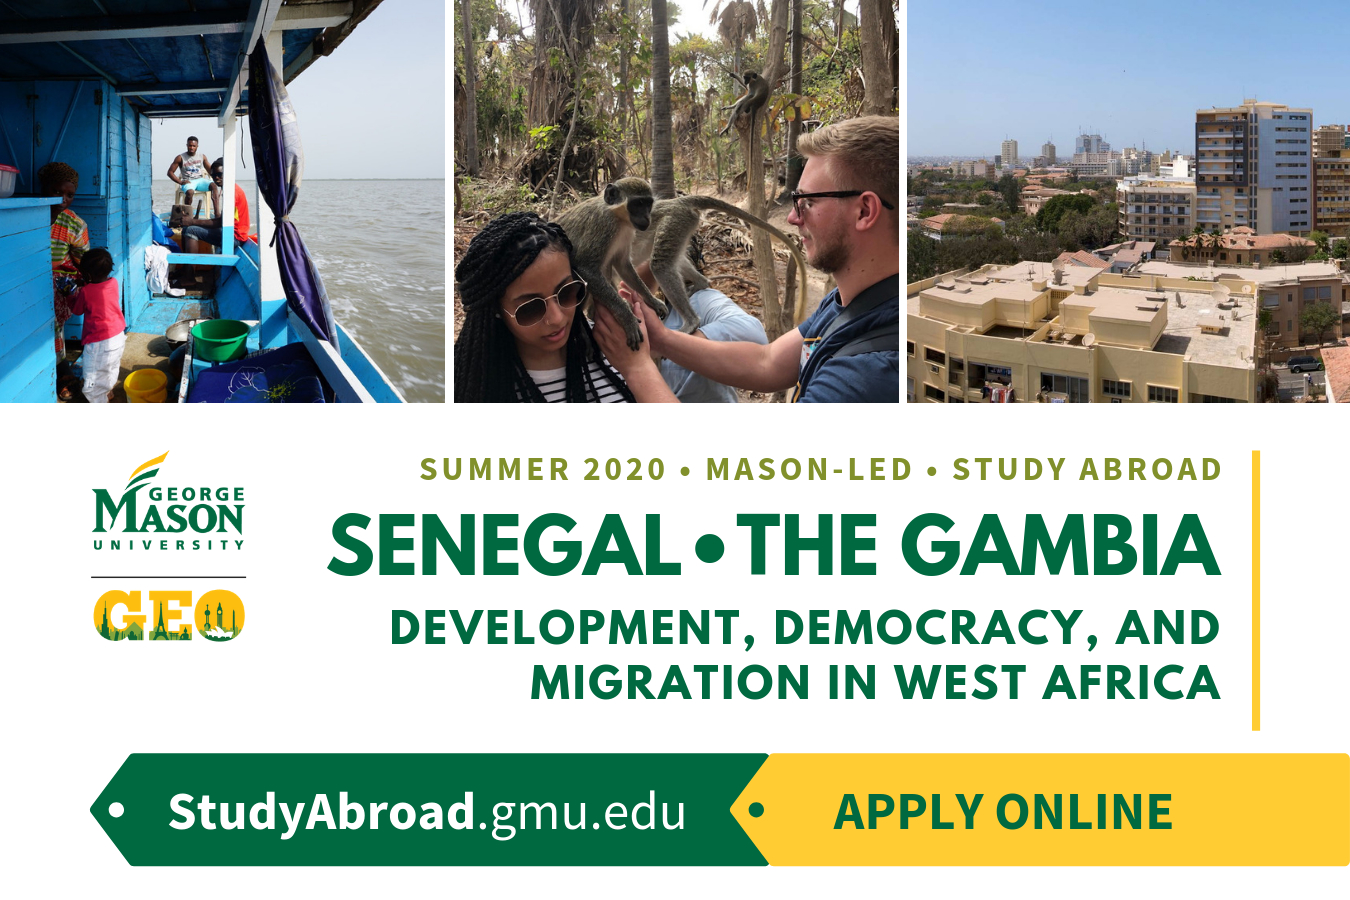 Information regarding Study Abroad in The Gambia is as follows Create Your Own Tags: is #StudyAbroad and Start date (when you would like your content to be posted) is September 15 2019 and End Date  (when you would like your content to be removed from the screens) is December 31 2019 and Name is Achim Loch and File is Browse and Group Name is Global Education Office and Email is Goabroad@gmu.edu and File Name is The-Gambia_comp.jpg and Panel for your ad to be displayed is Main and Affiliation is Mason Department and Name of Ad/Event is Study Abroad in The Gambia and